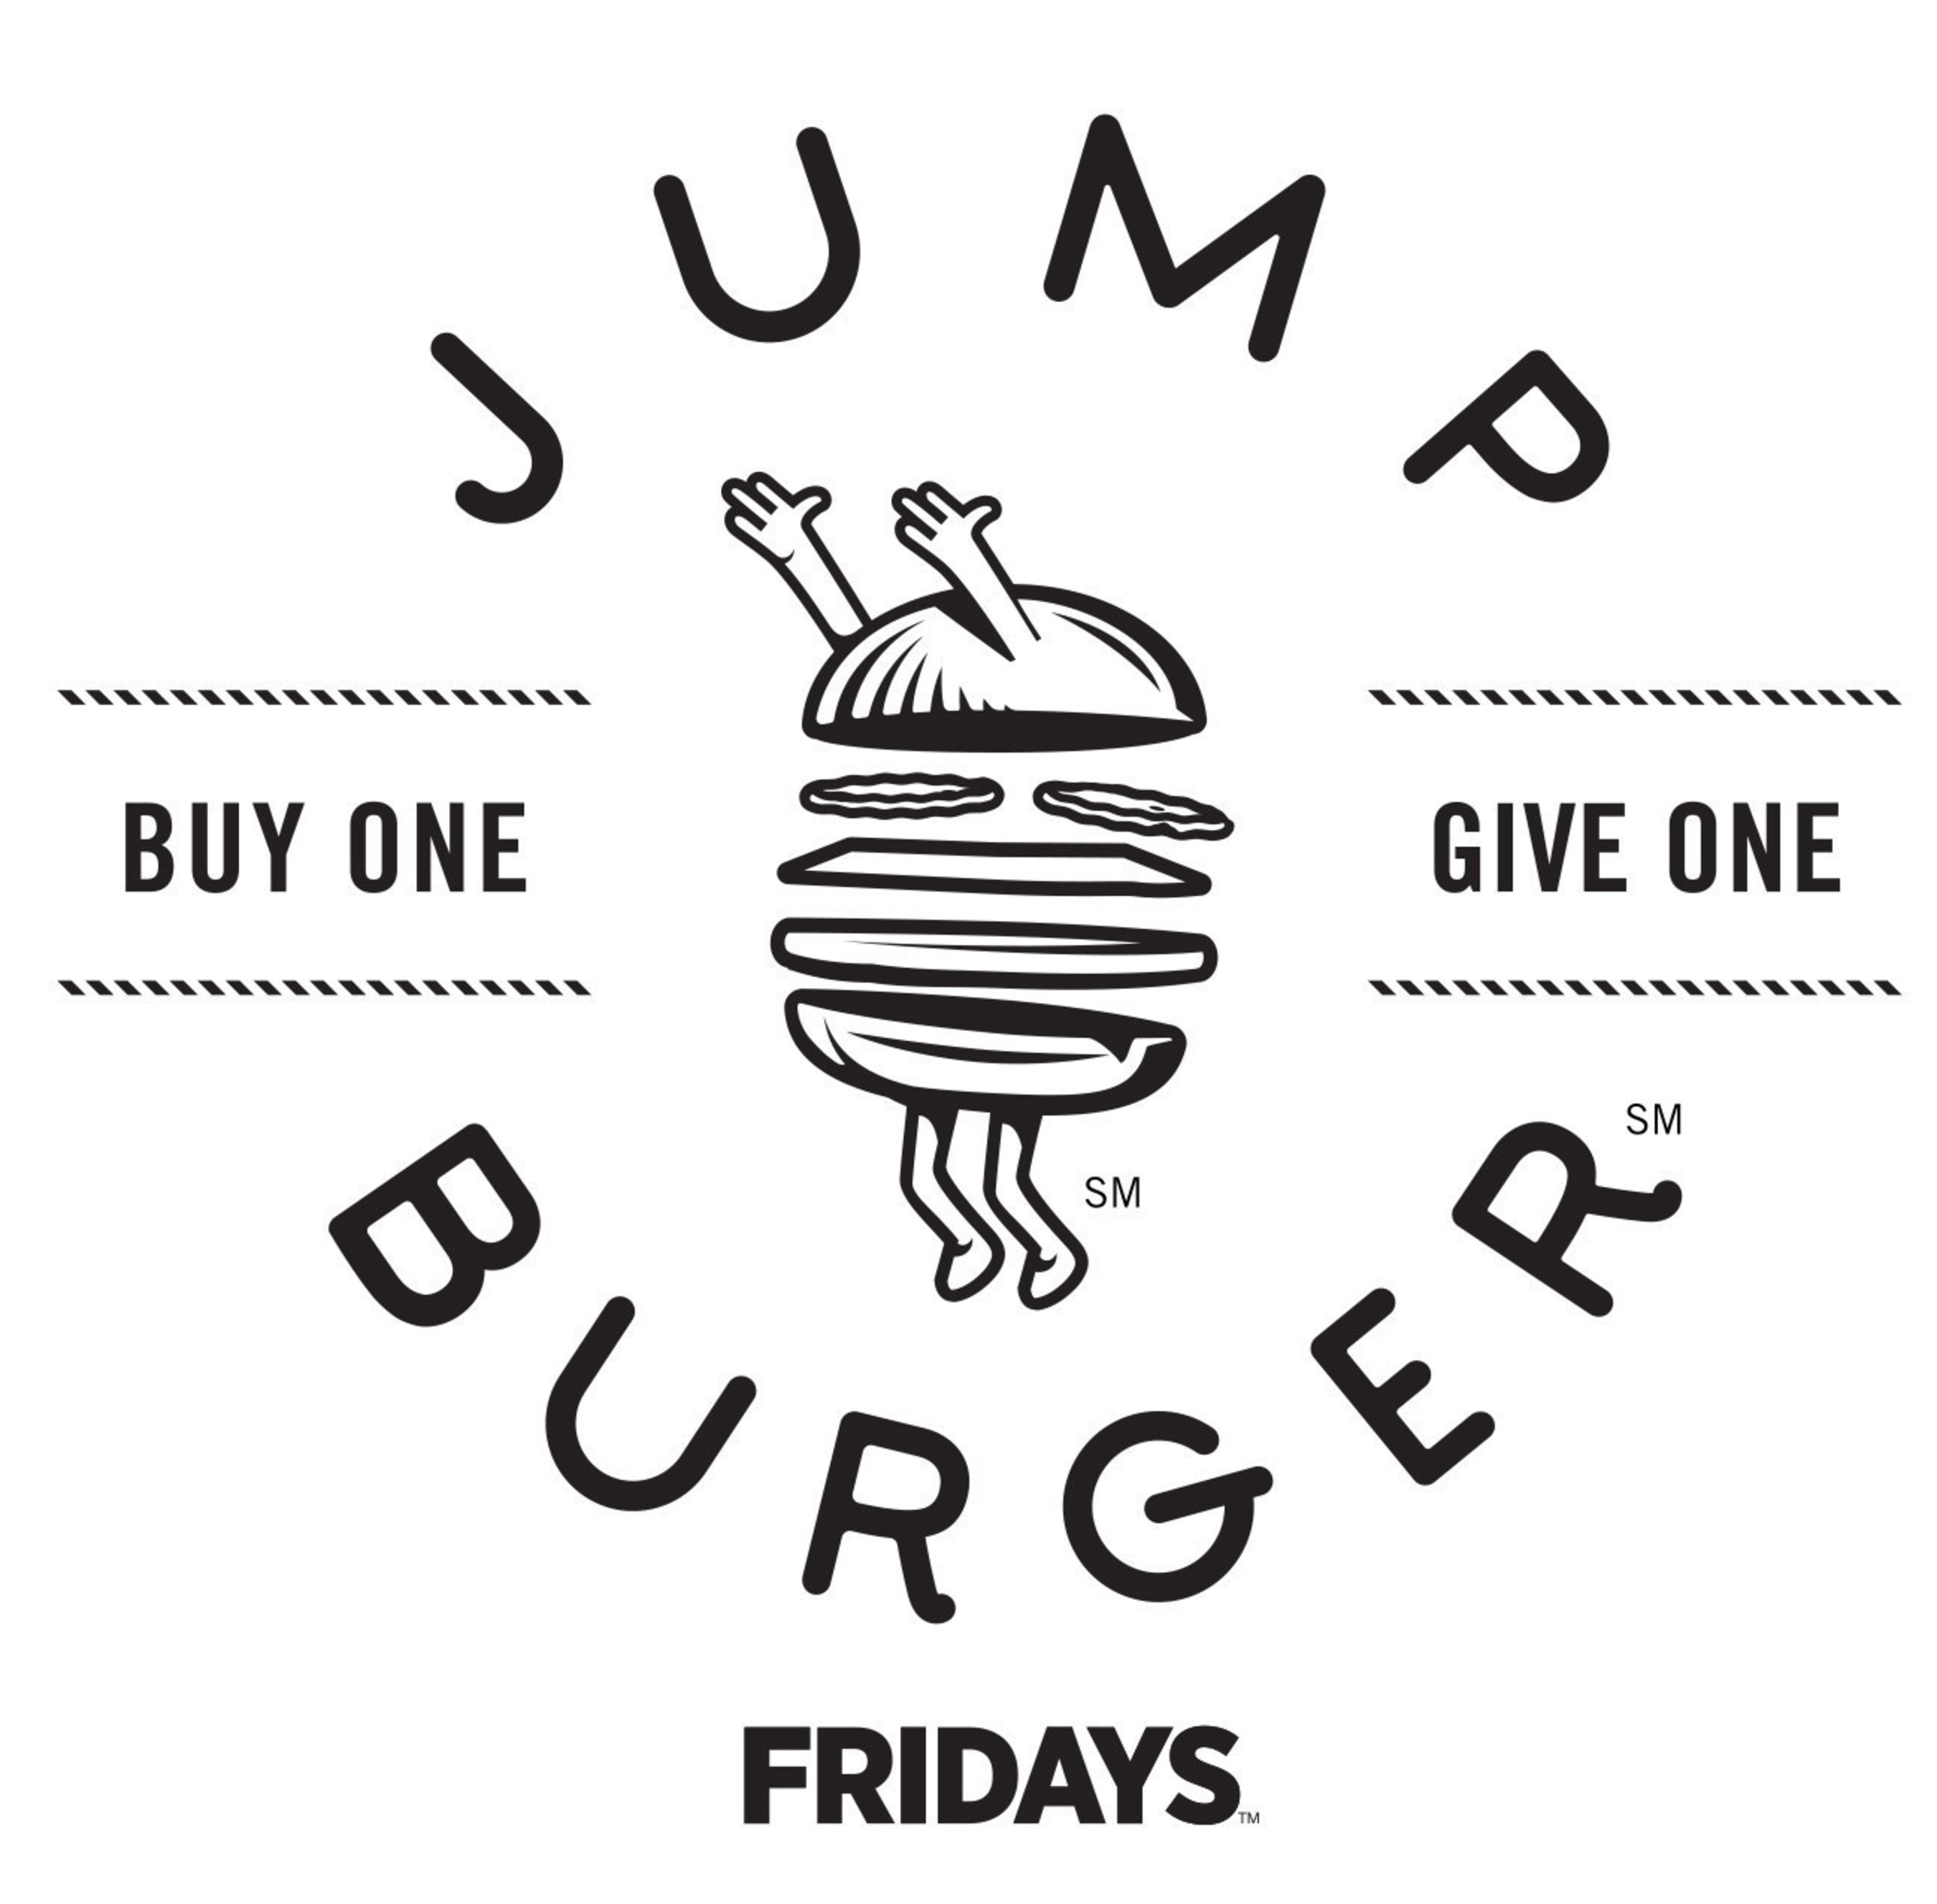 Buy any one of Fridays hand-crafted burgers and enter the code on the receipt at www.jumpburger.com, and you'll get a FREE burger to toss out on your social networks, or to email to friends.